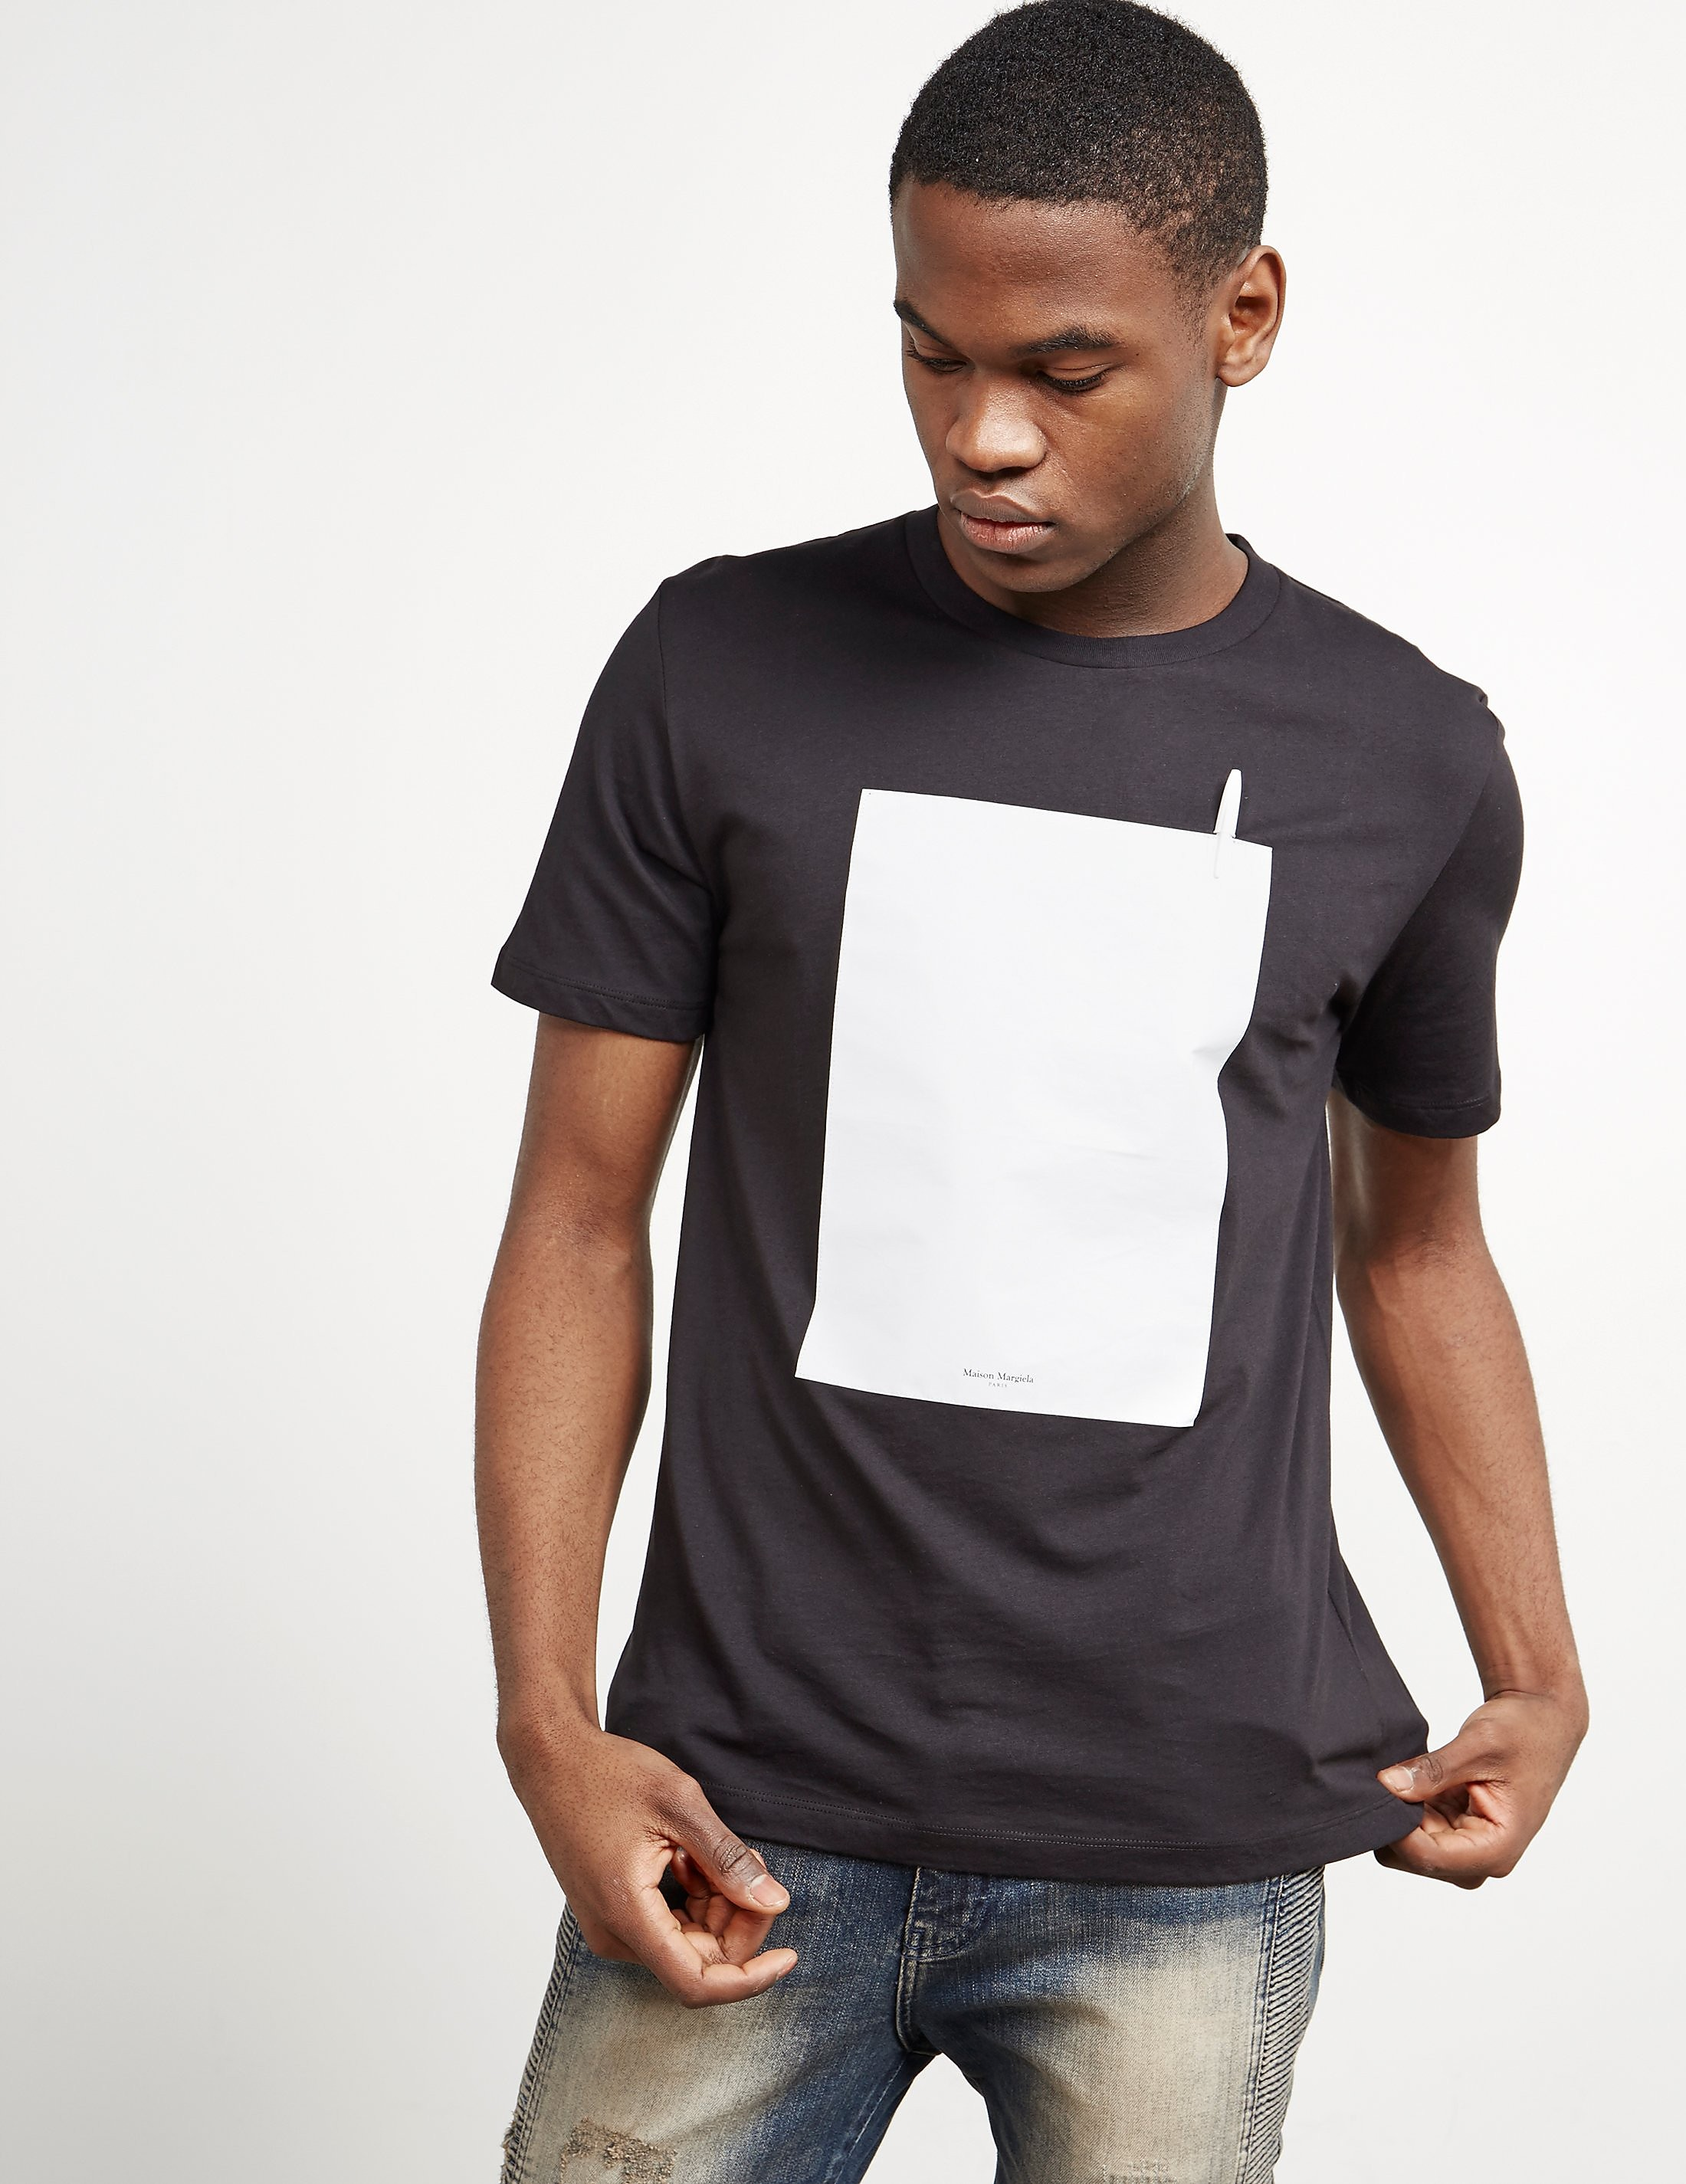 Maison Margiela Writer Short Sleeve T-Shirt